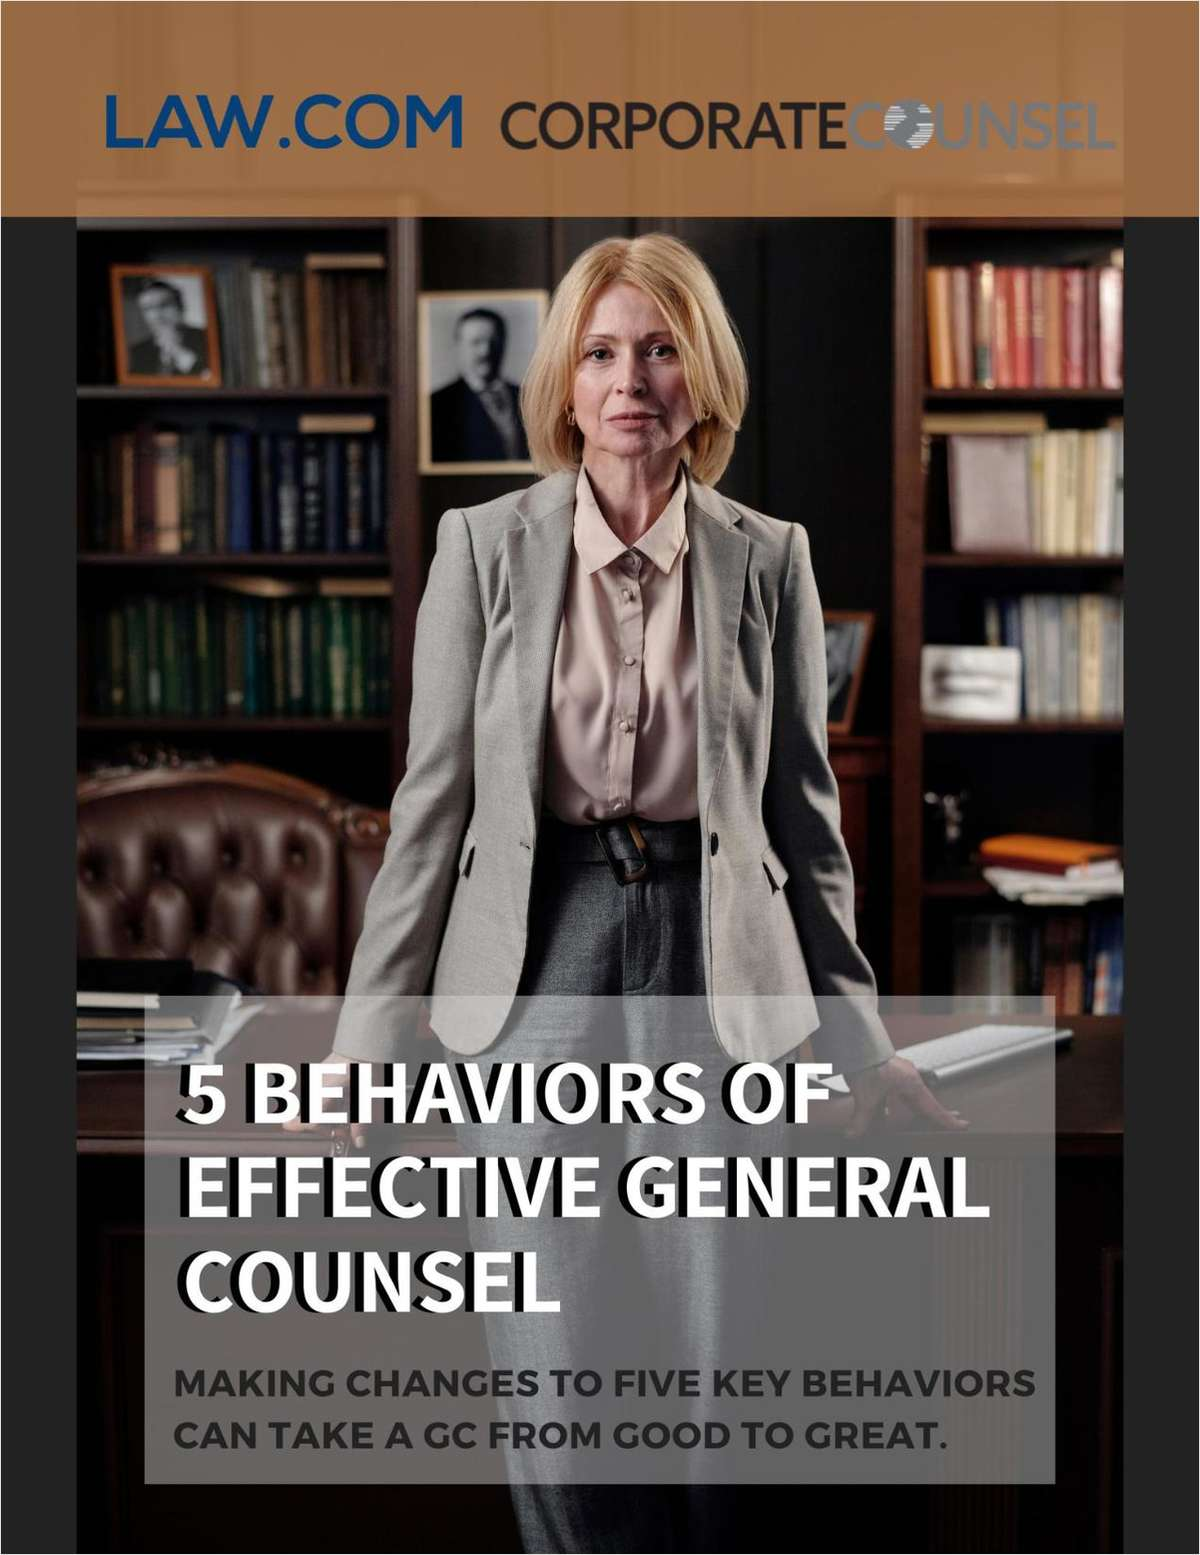 5 Behaviors of Effective General Counsel